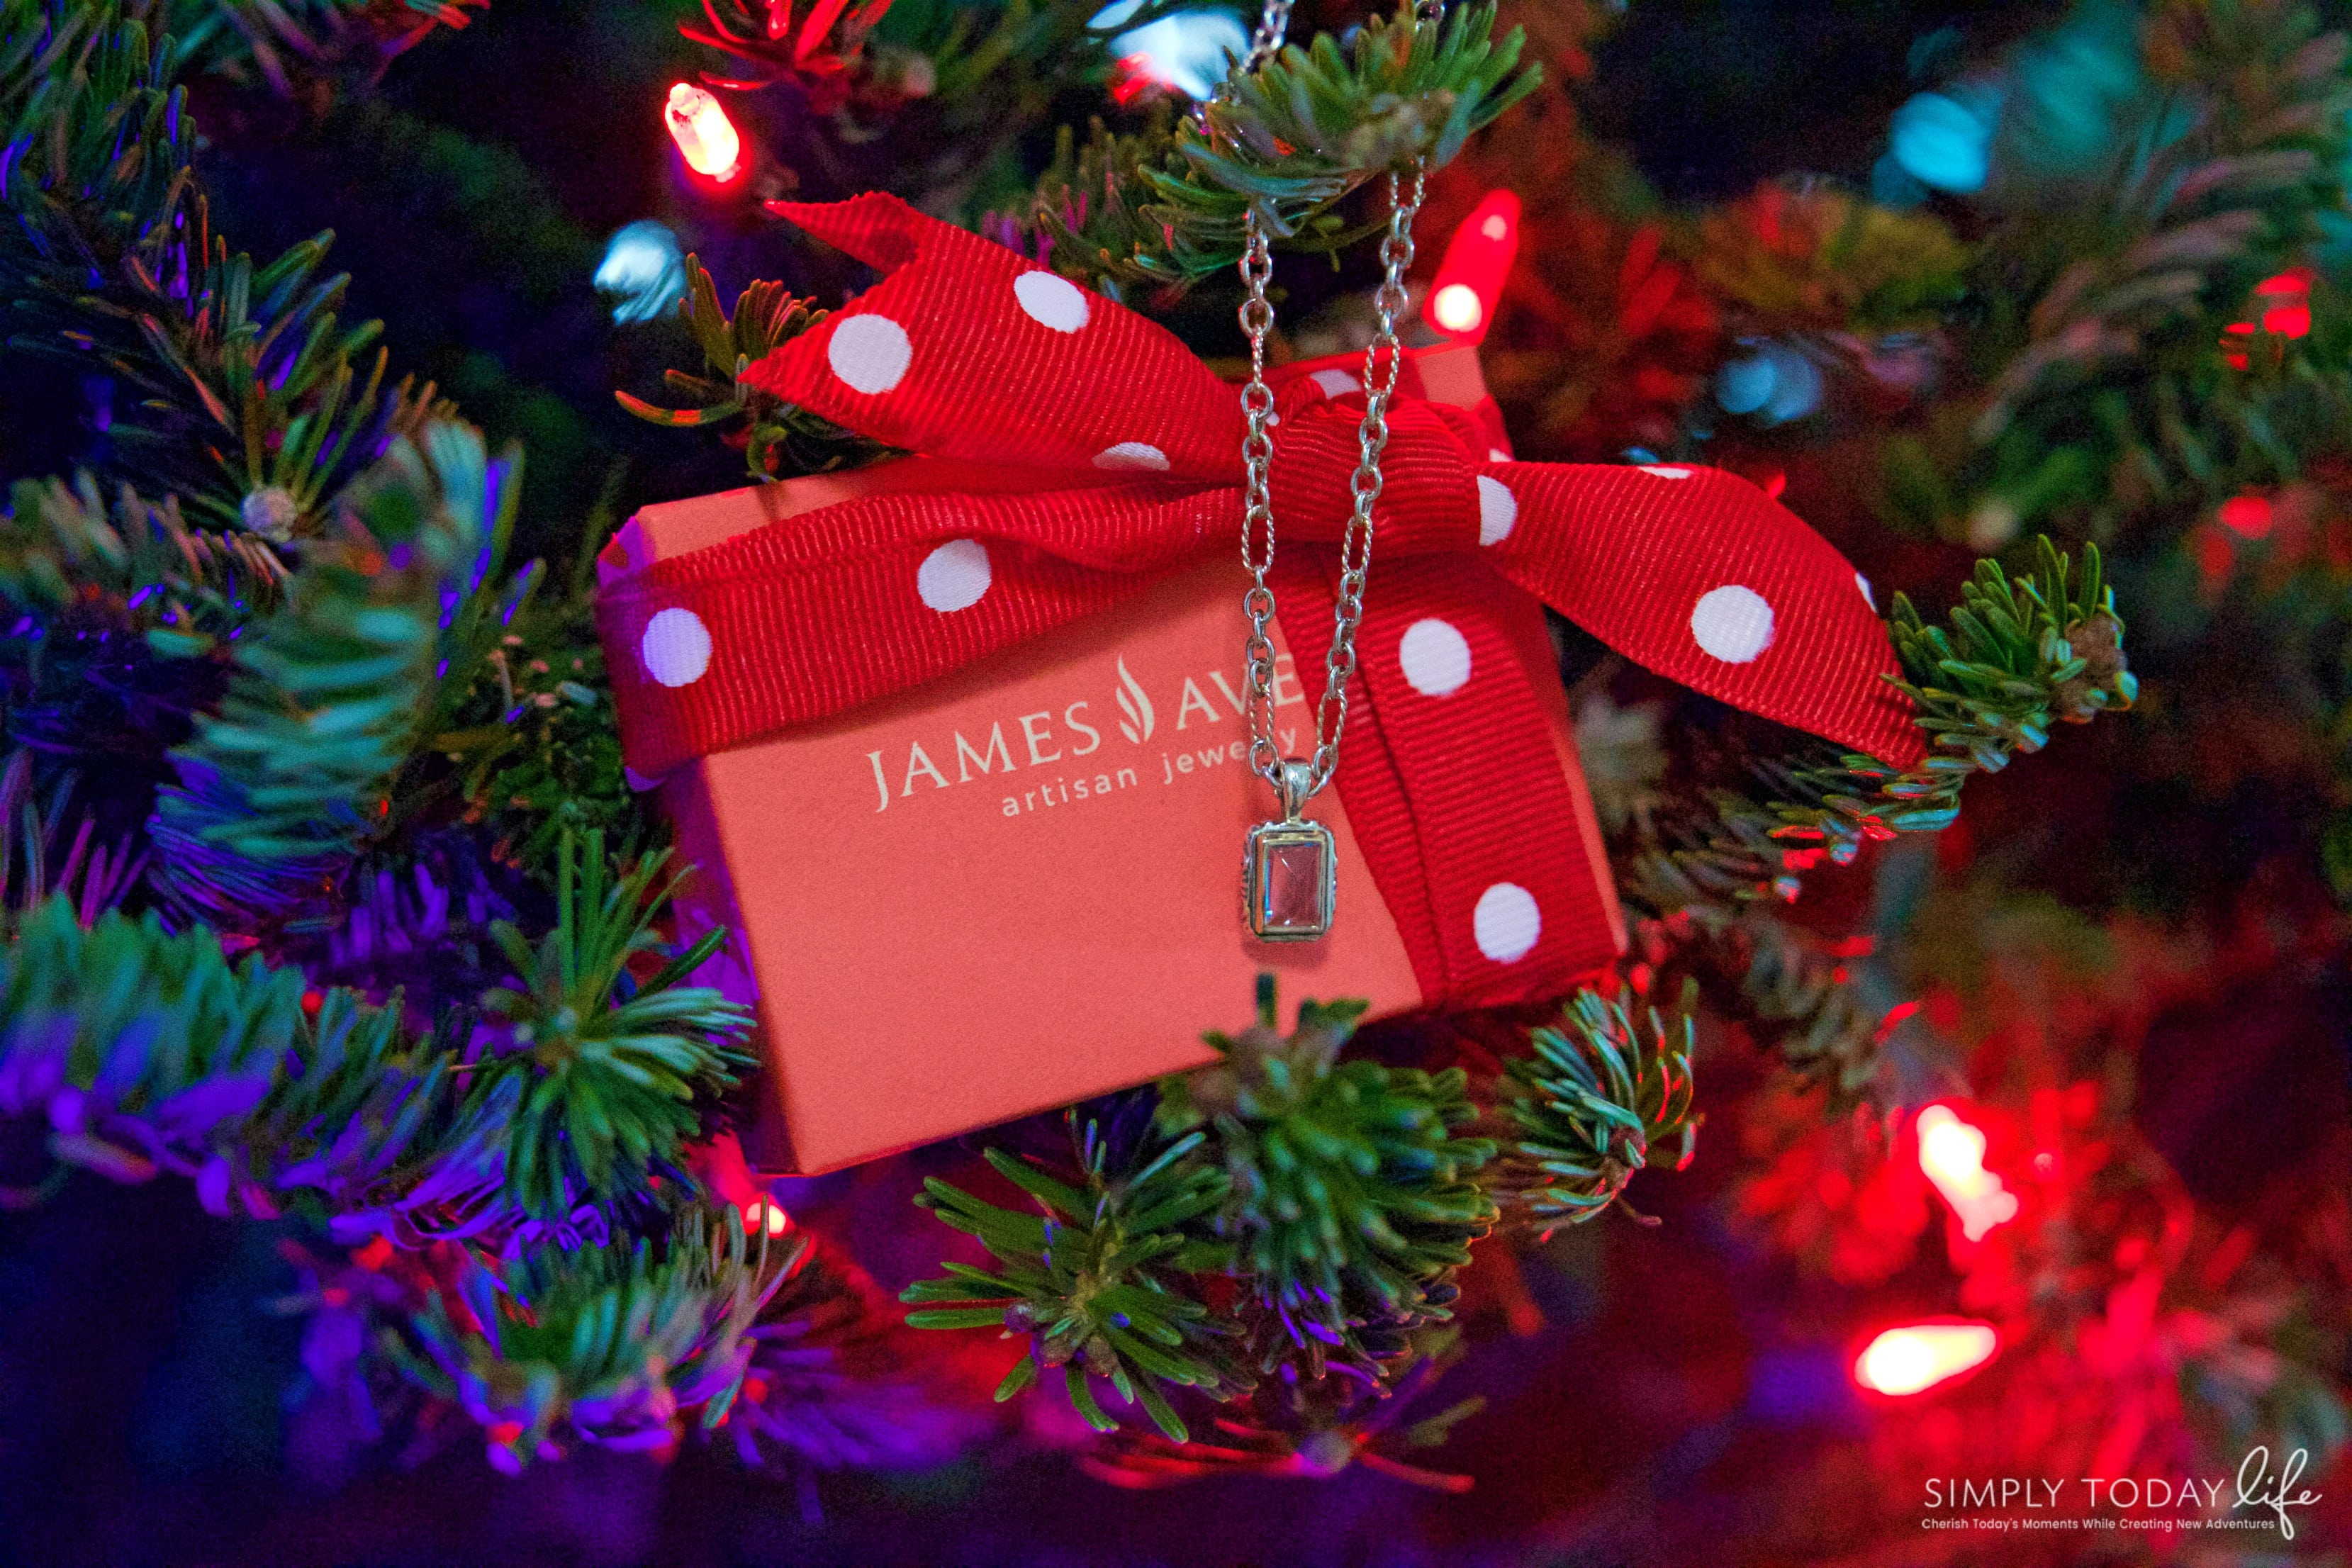 a sentimental holiday gift for mom with james avery artisan jewelry christmas present for mom